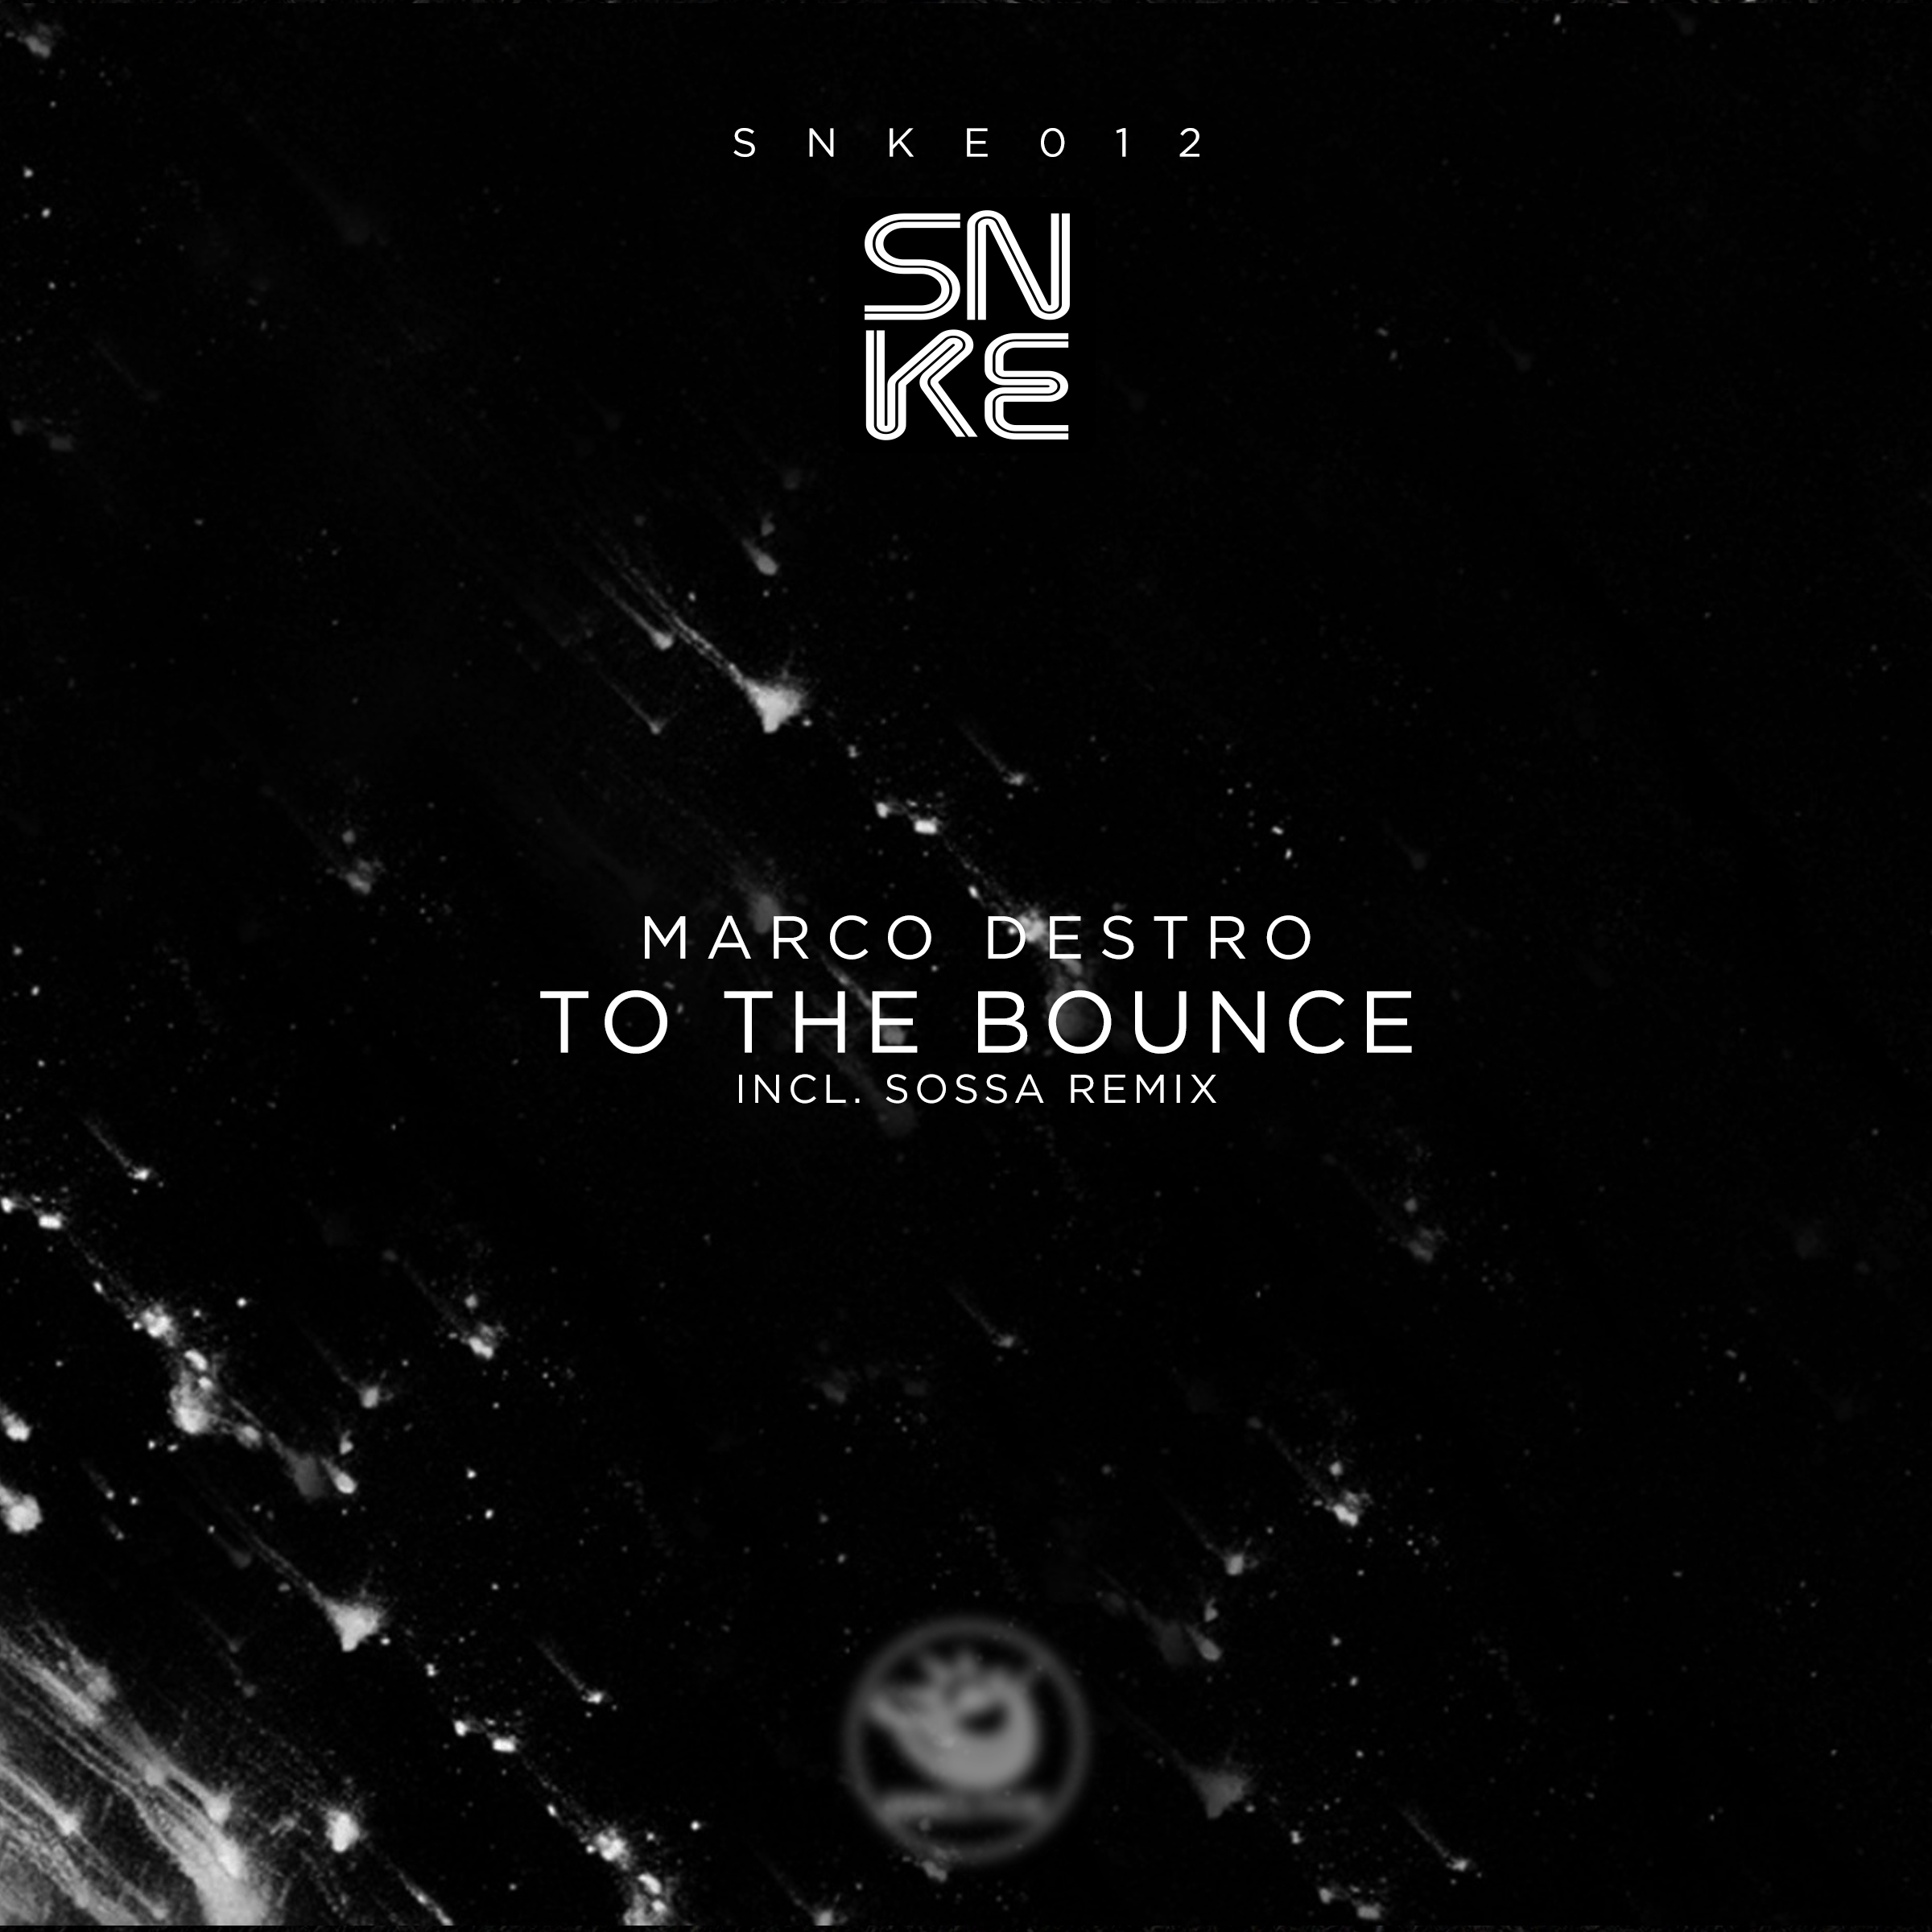 Marco Destro - To The Bounce (incl. Sossa Remix) - SNKE012 Cover